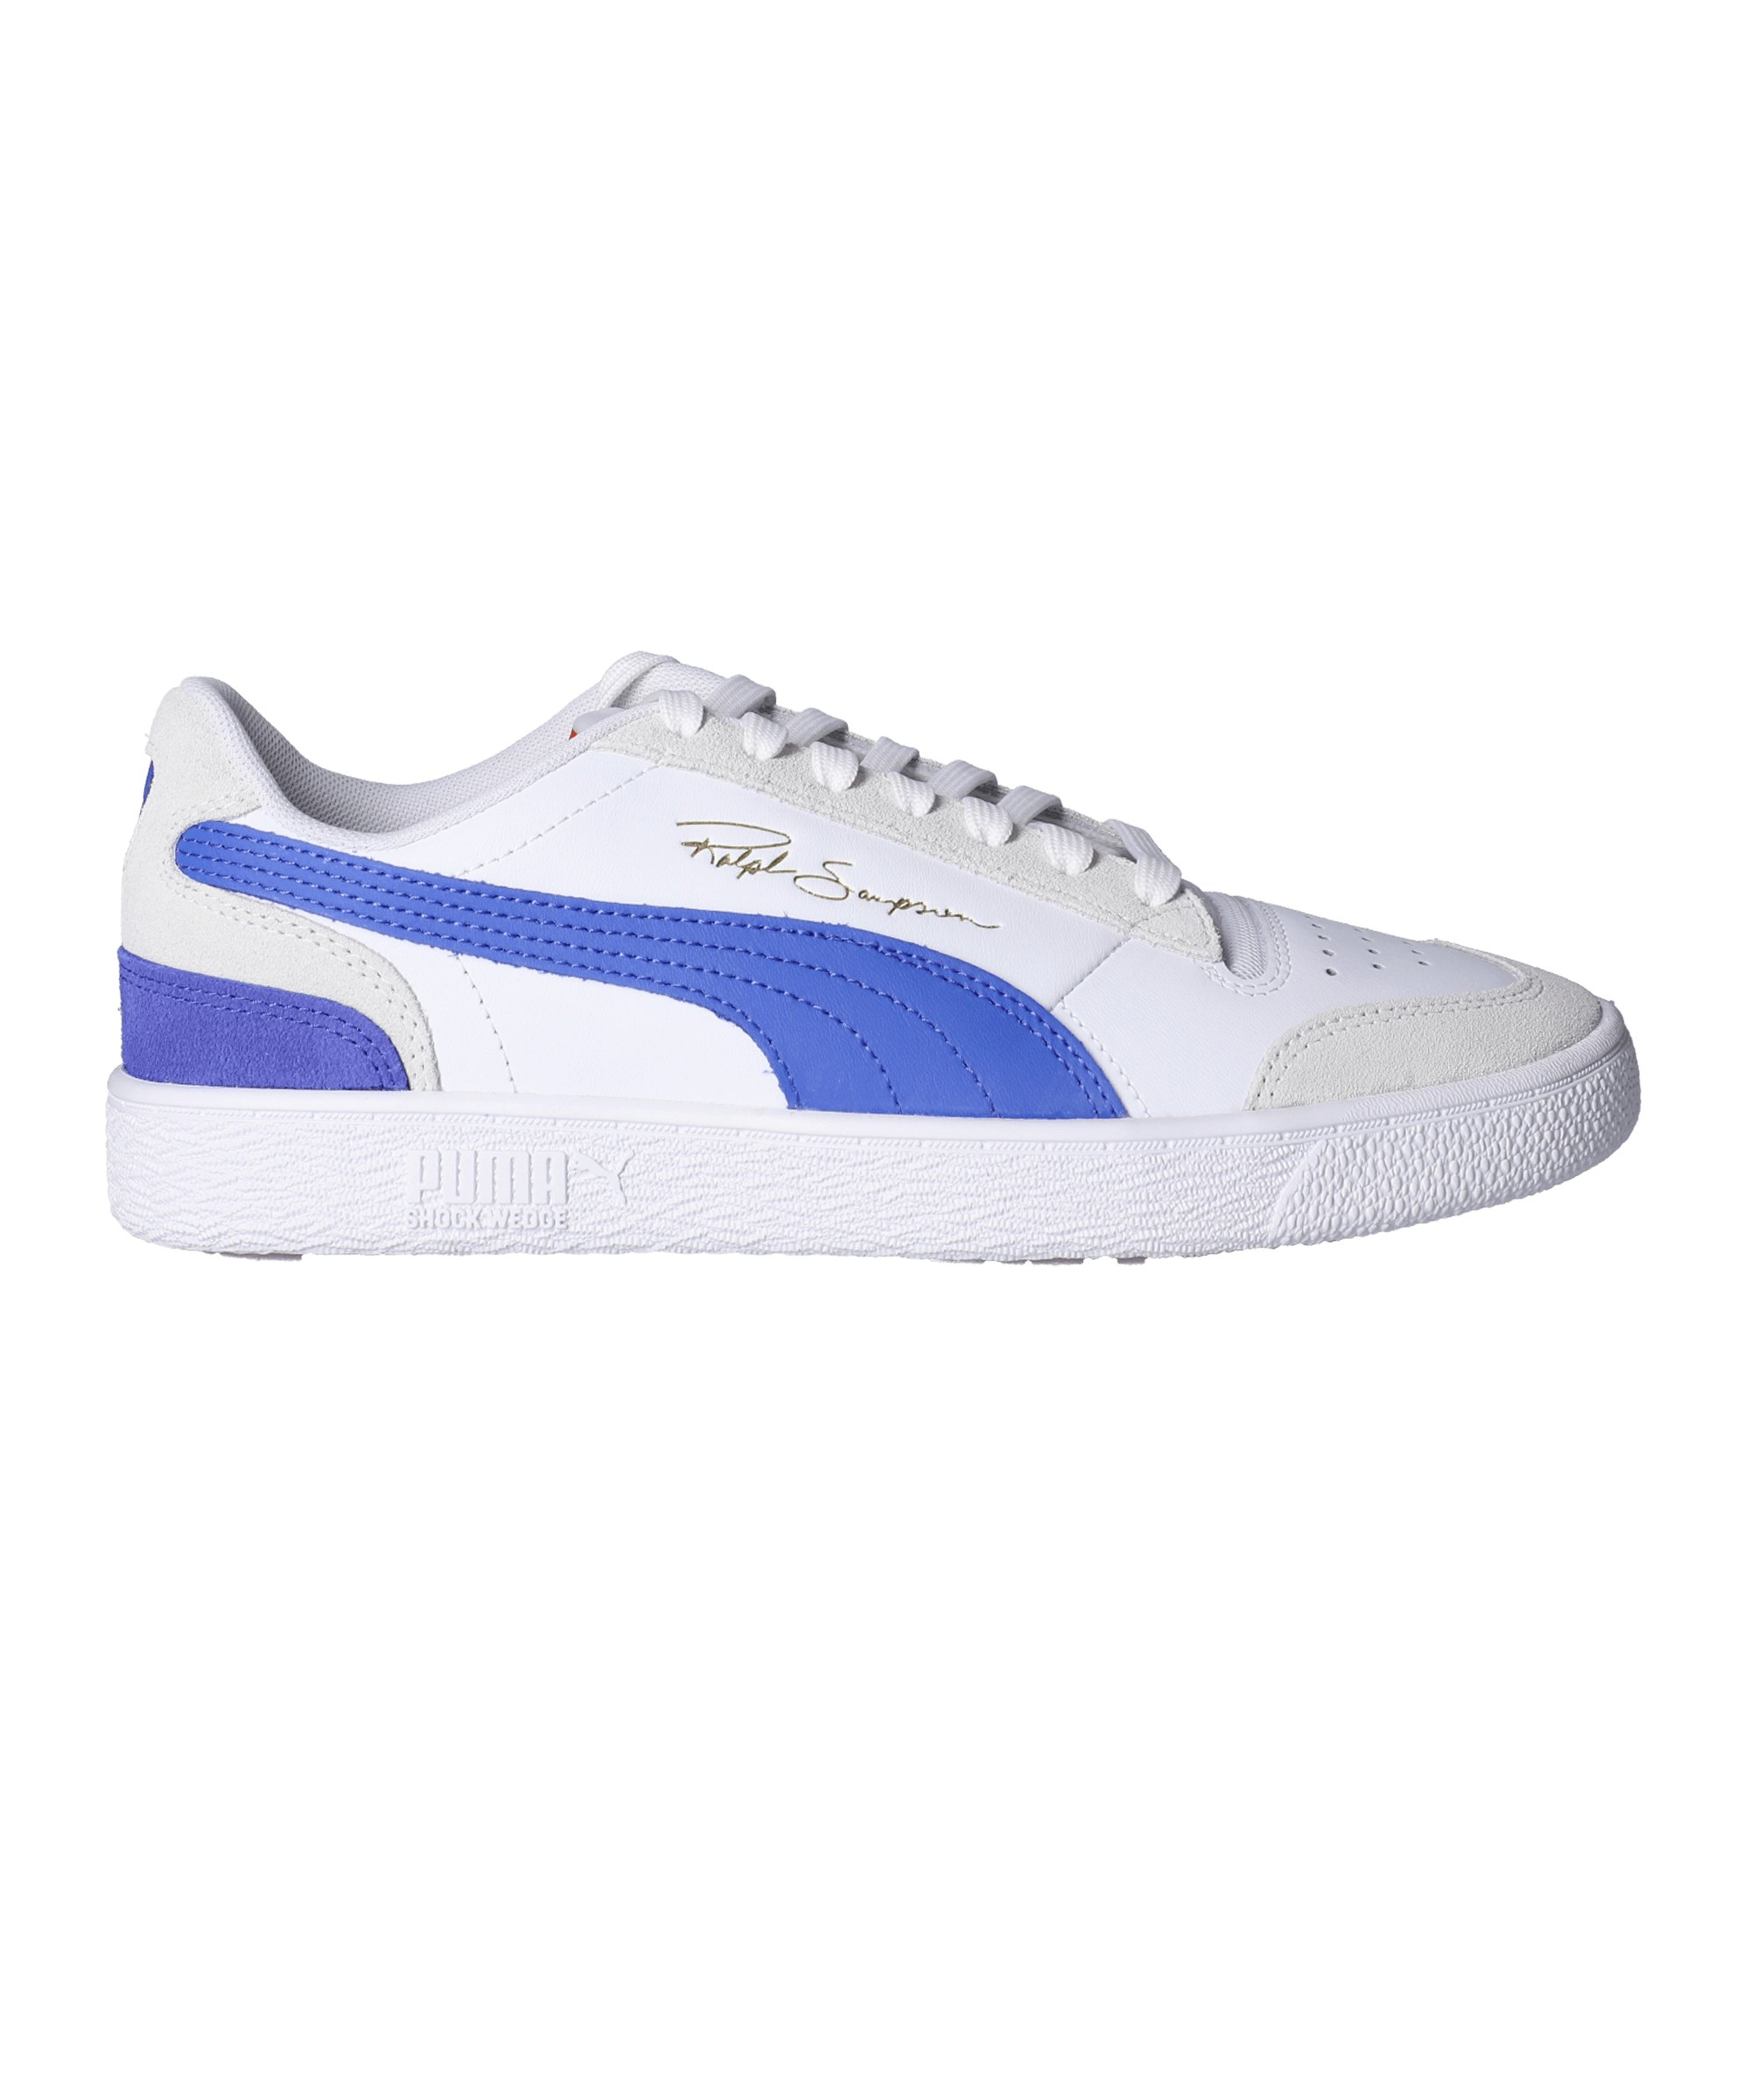 PUMA Ralph Sampson Lo Vintage Sneaker Weiss F01 - weiss